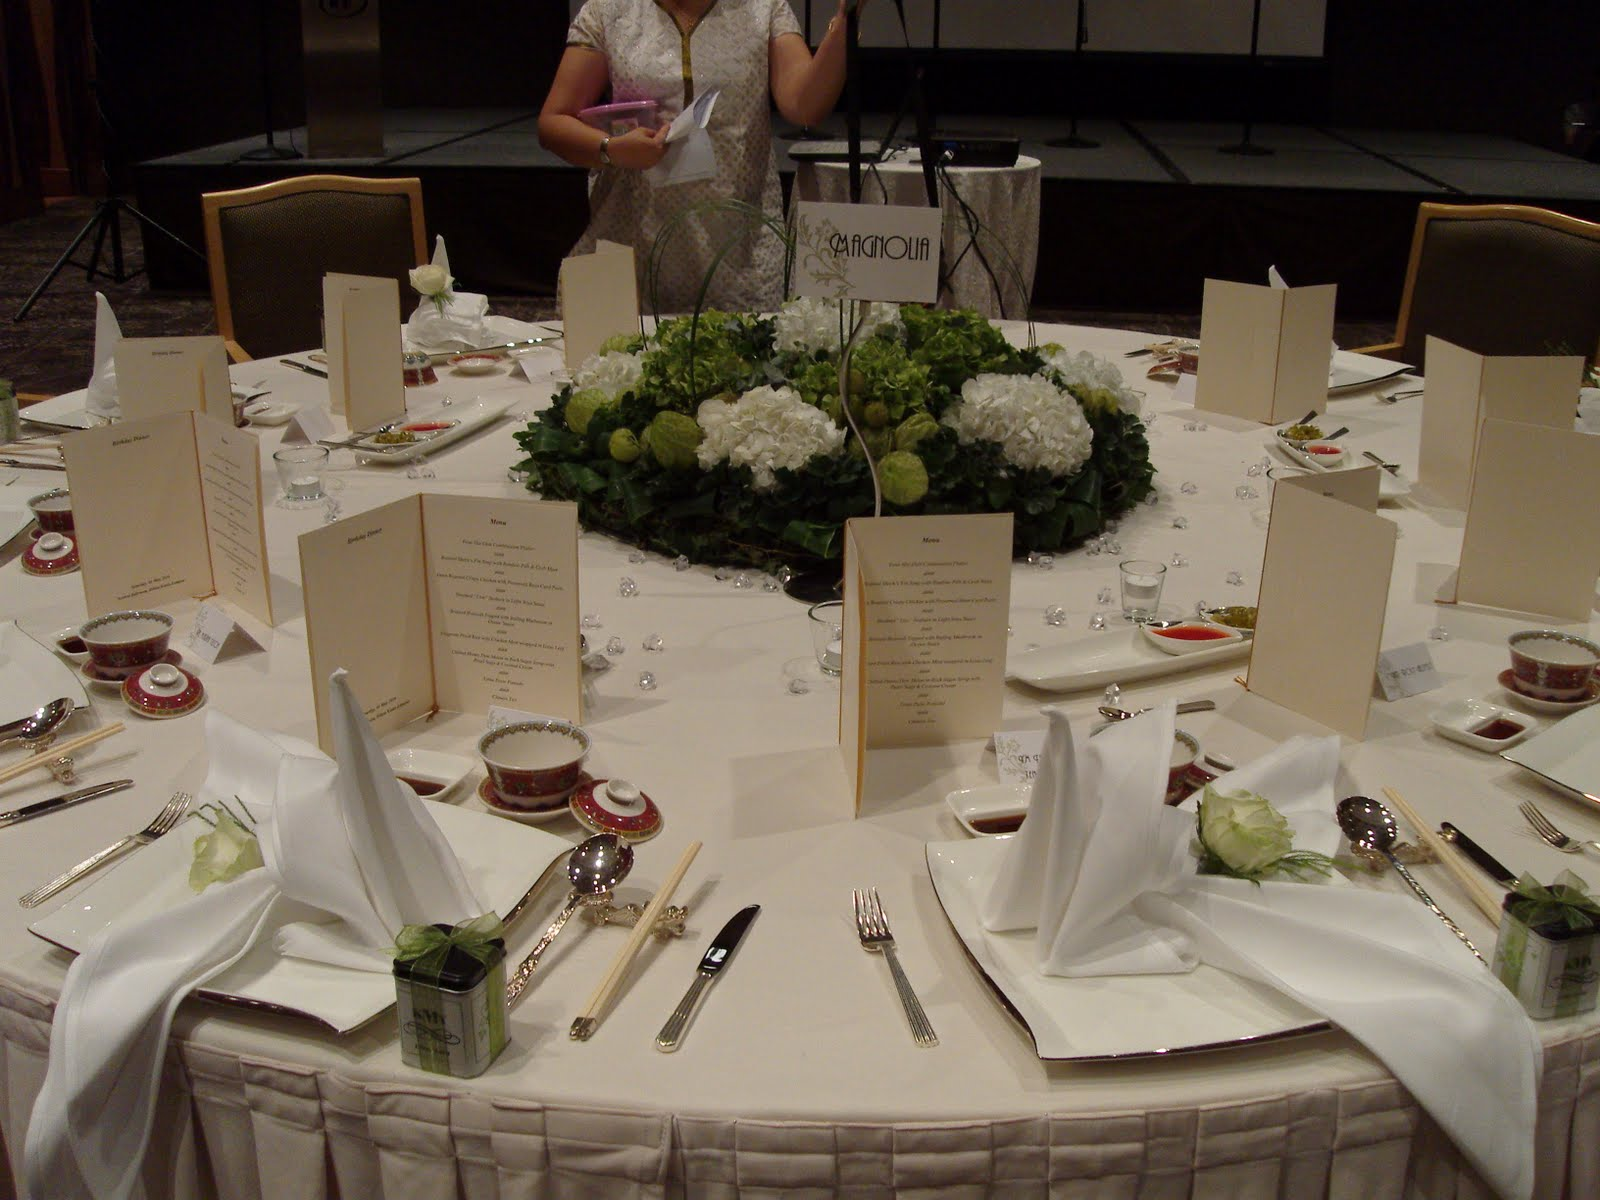 70th birthday table decorations ideas image inspiration for 70th birthday decoration